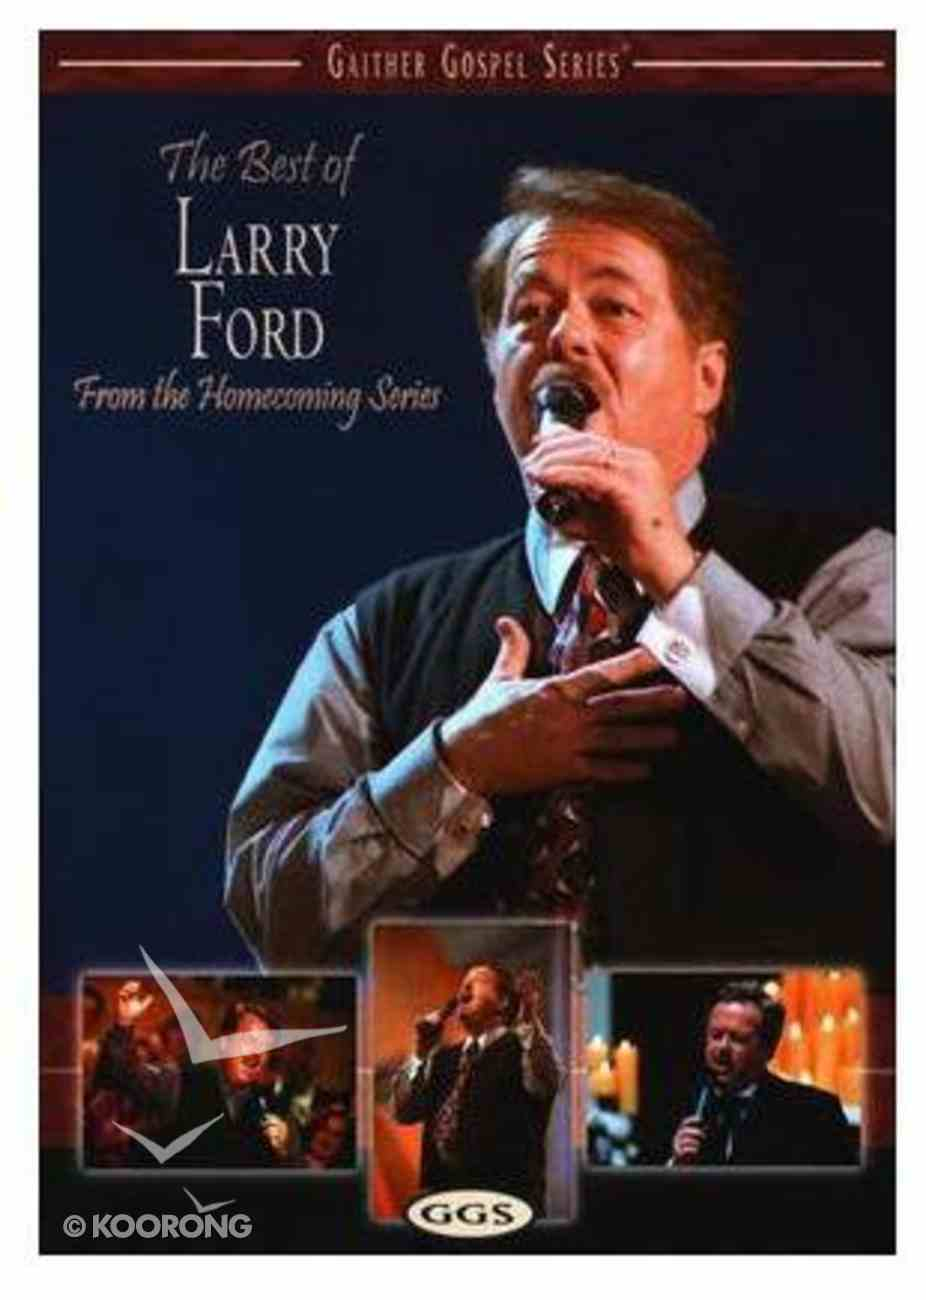 The Best of Larry Ford (Gaither Gospel Series) DVD